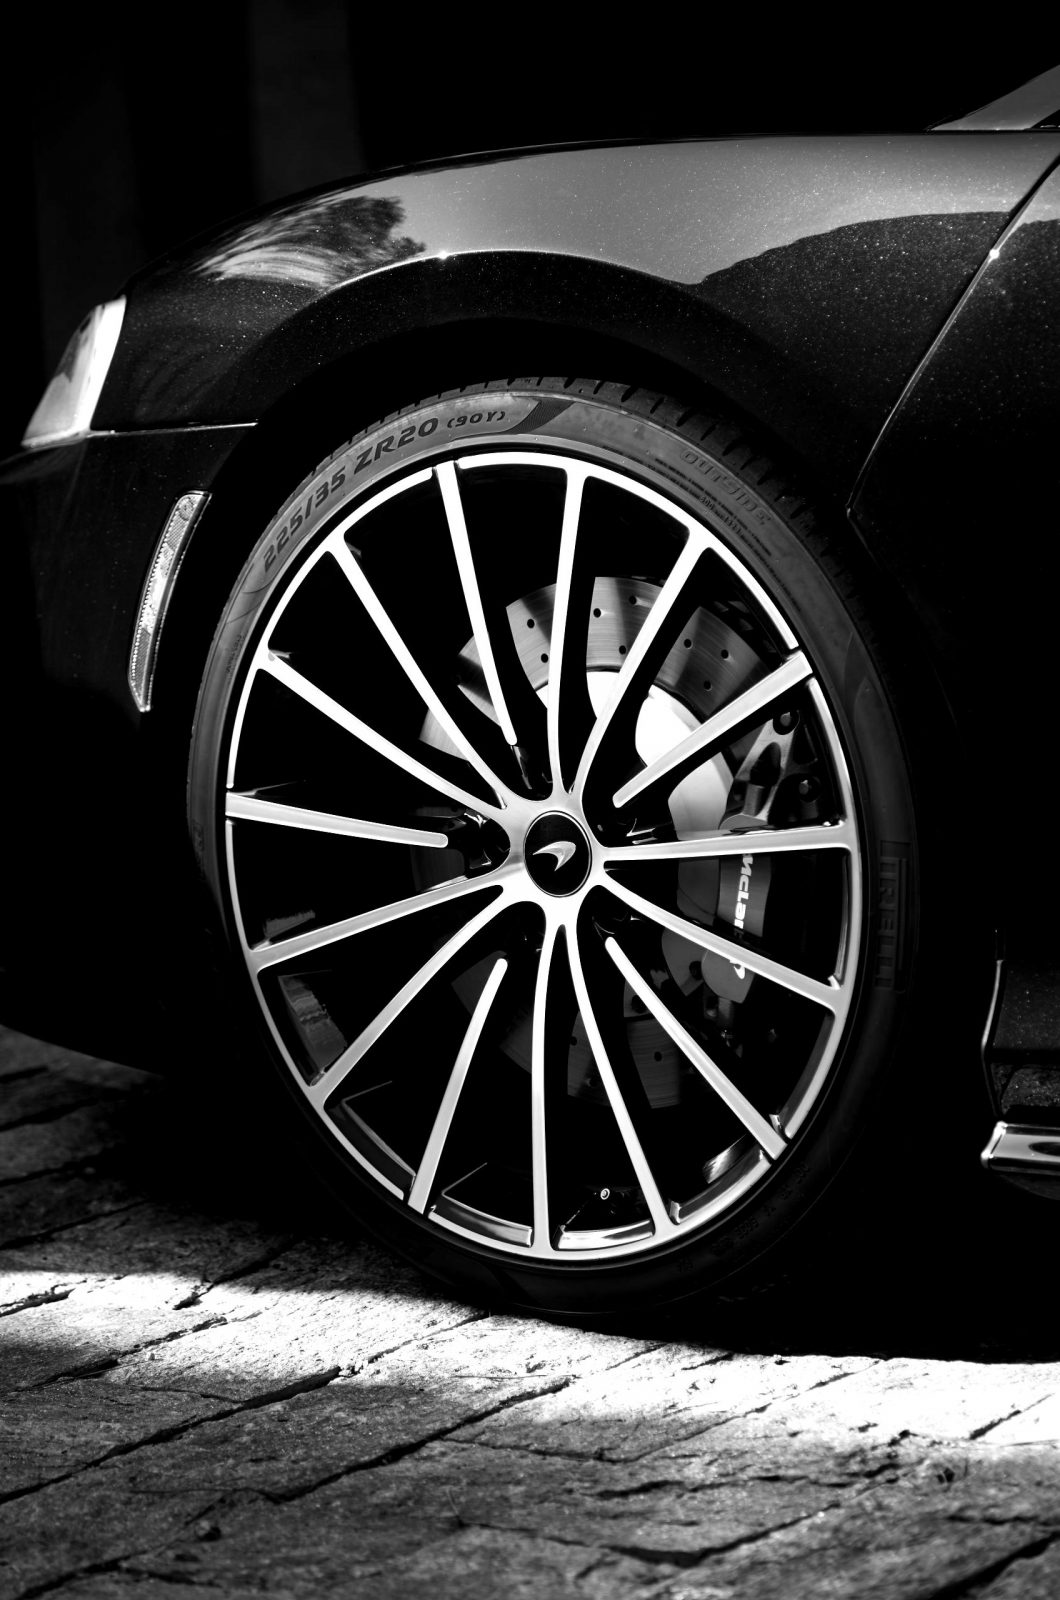 McLaren-GT-GlobalTestDrive-0014-scaled-blackwhite